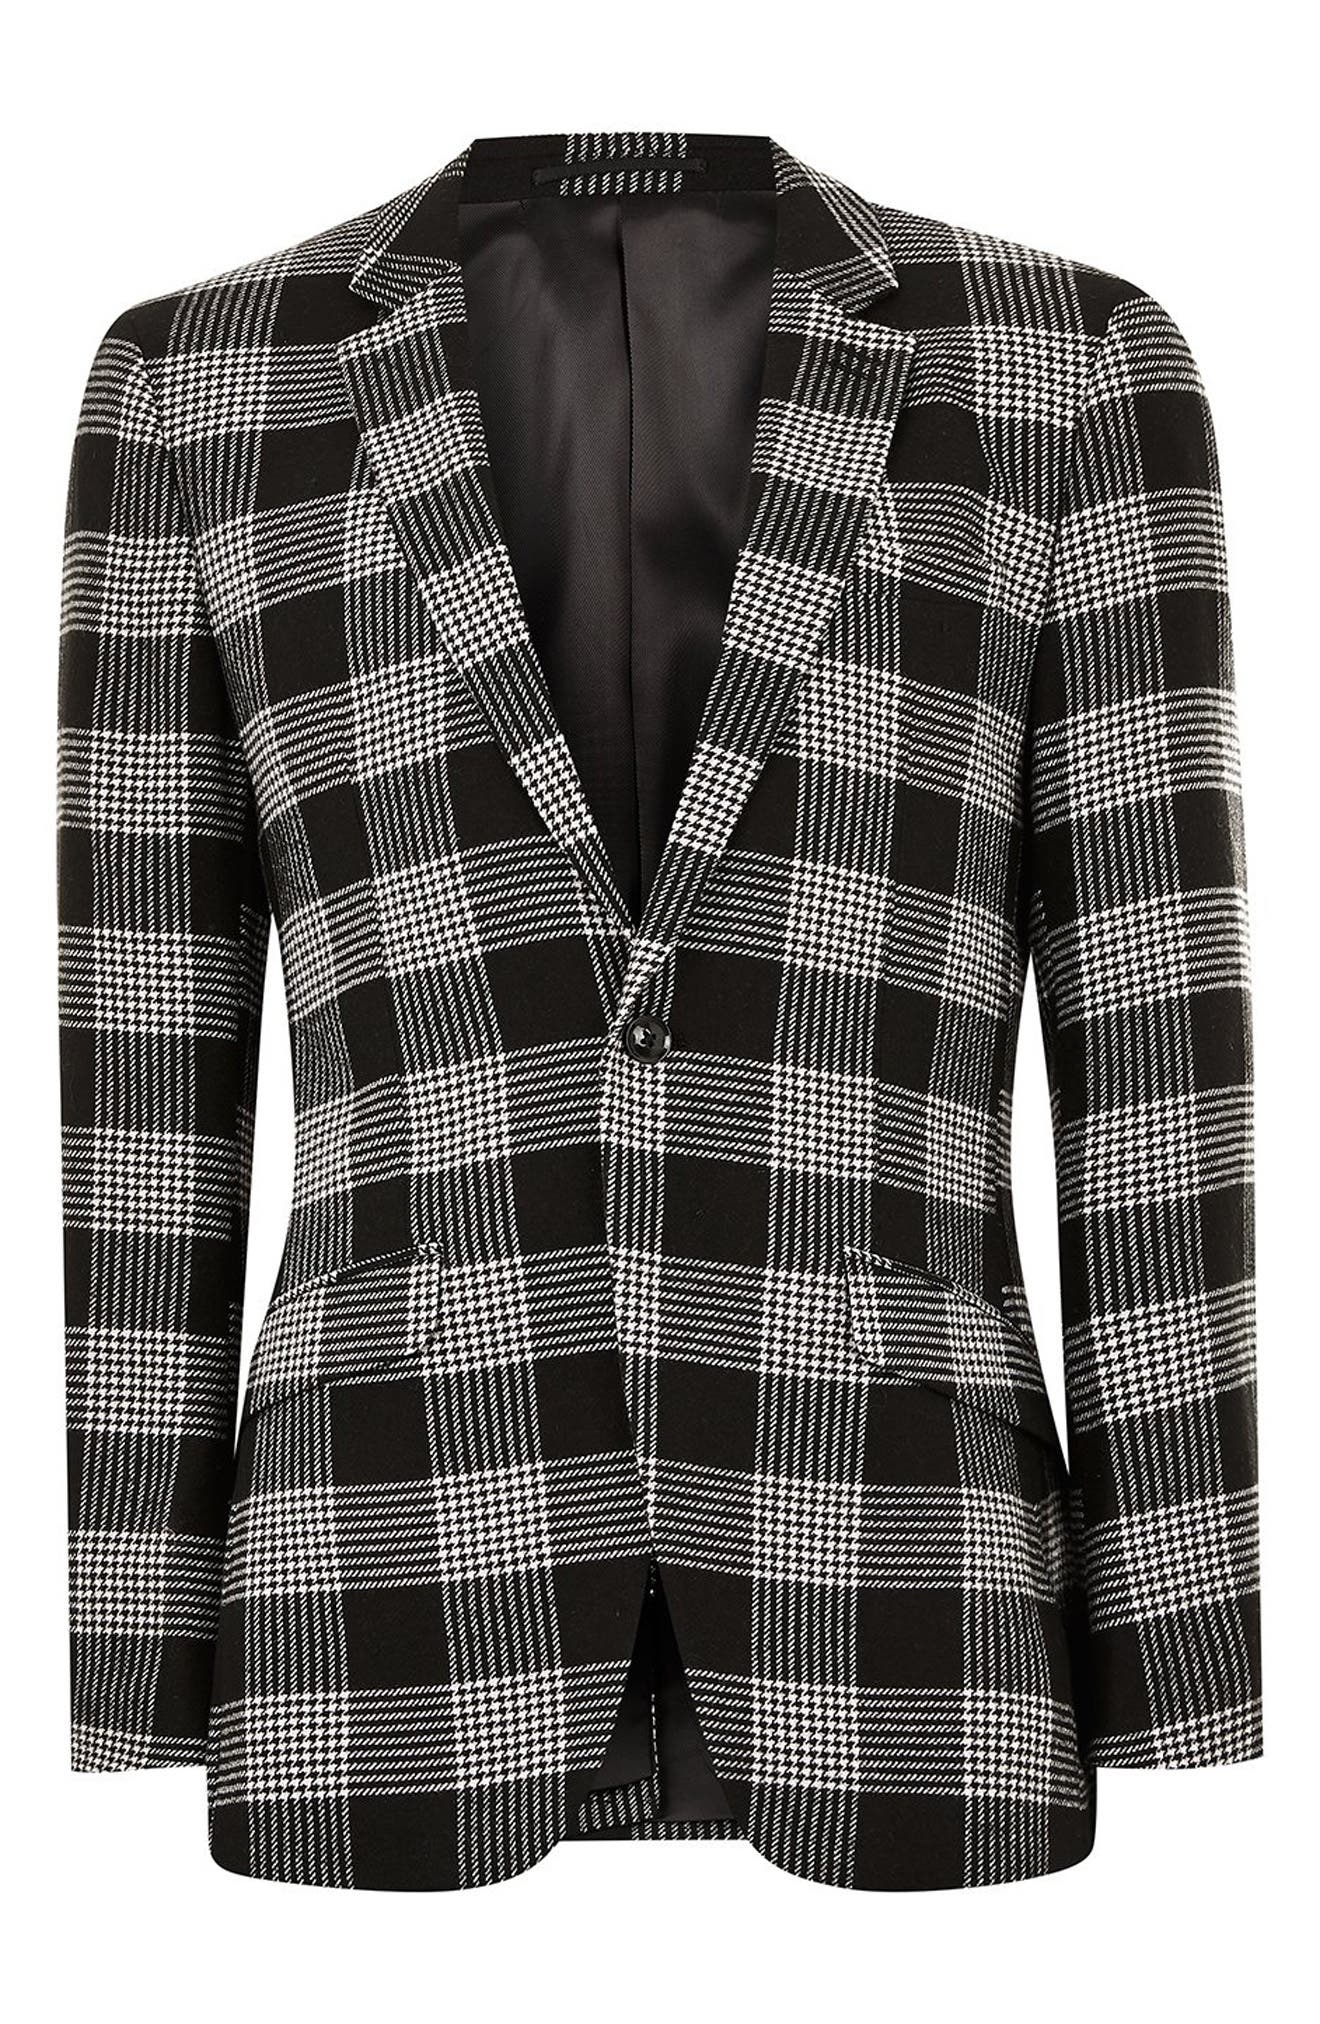 Leigh Classic Check Slim Fit Blazer,                             Alternate thumbnail 4, color,                             BLACK MULTI